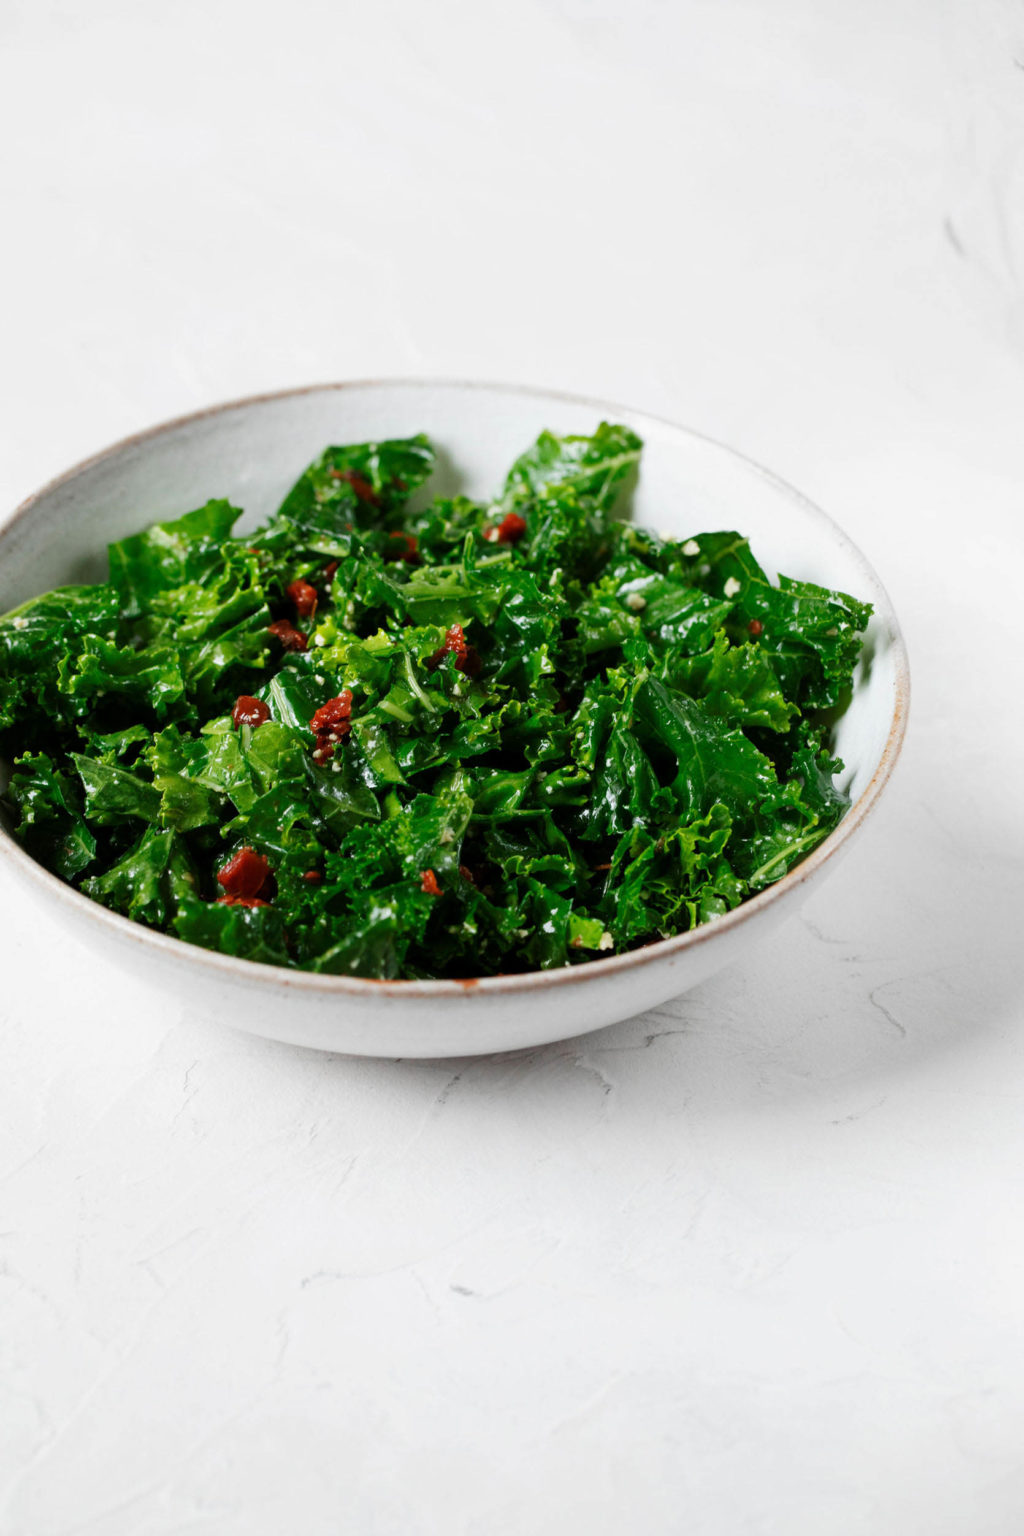 An angled photograph of a bed of dark, leafy greens, which are specked with small pieces of sun-dried tomato. They're sitting in a ceramic bowl.